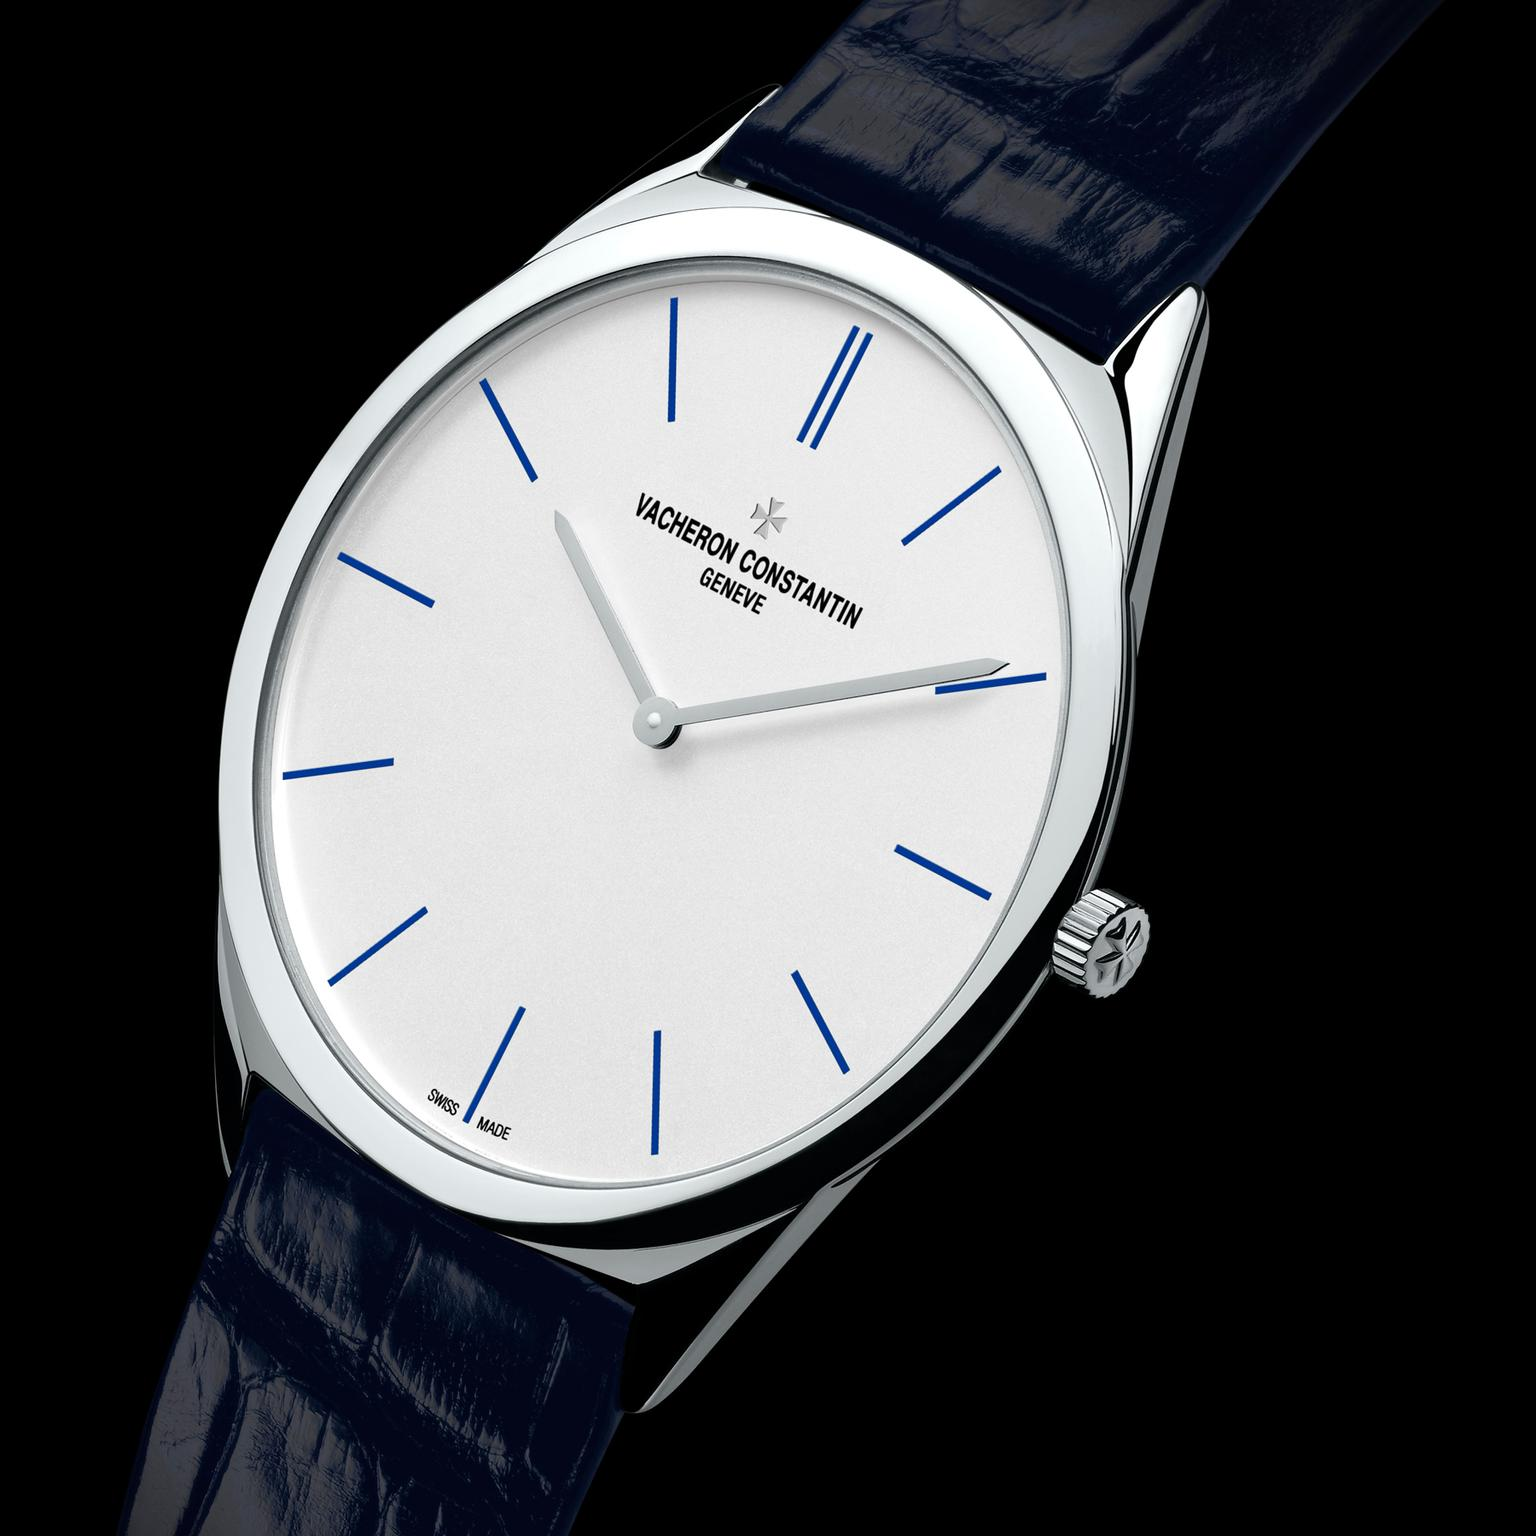 Vacheron Constantin Ultrafine 1955